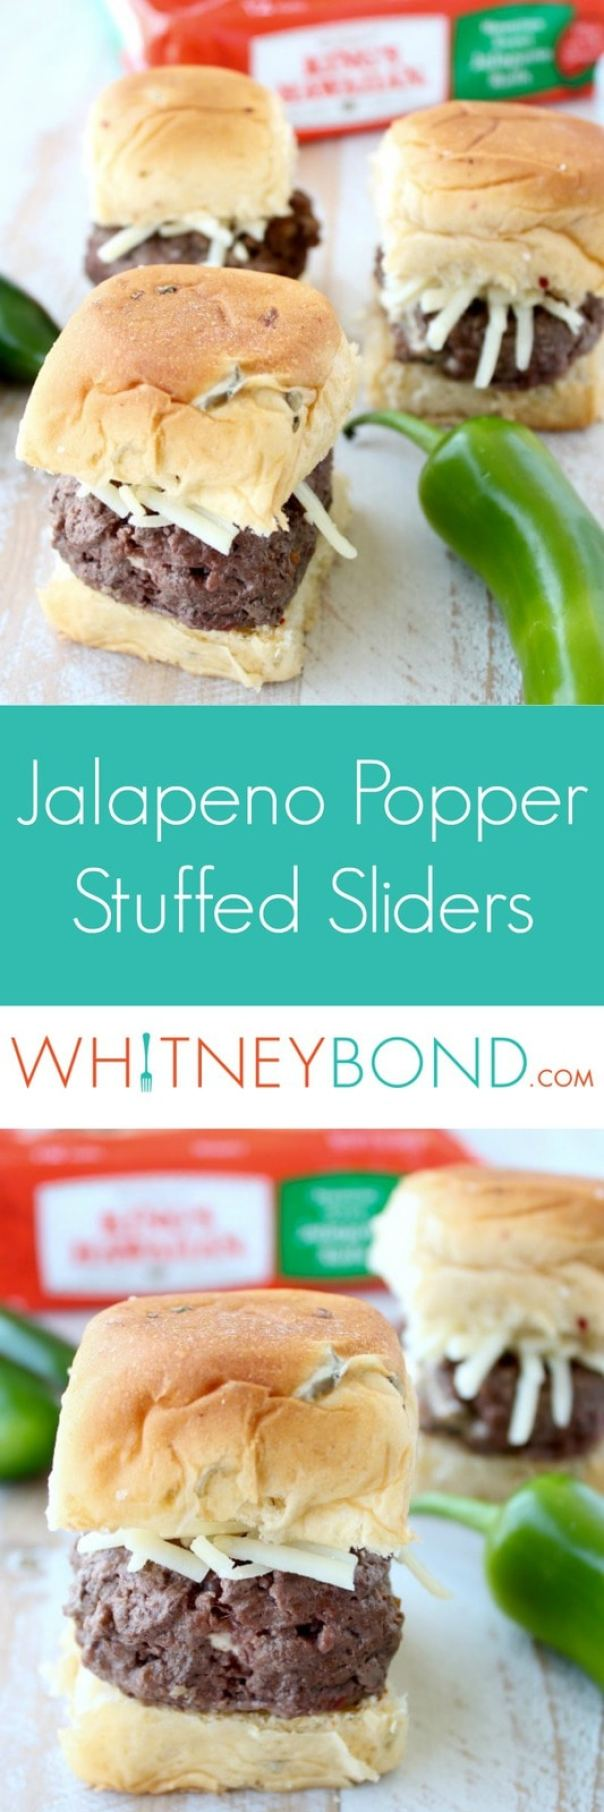 Roasted jalapenos, cream cheese & crispy bacon are stuffed into these delicious grilled hamburger stuffed sliders, perfect for Summer BBQ's & parties!